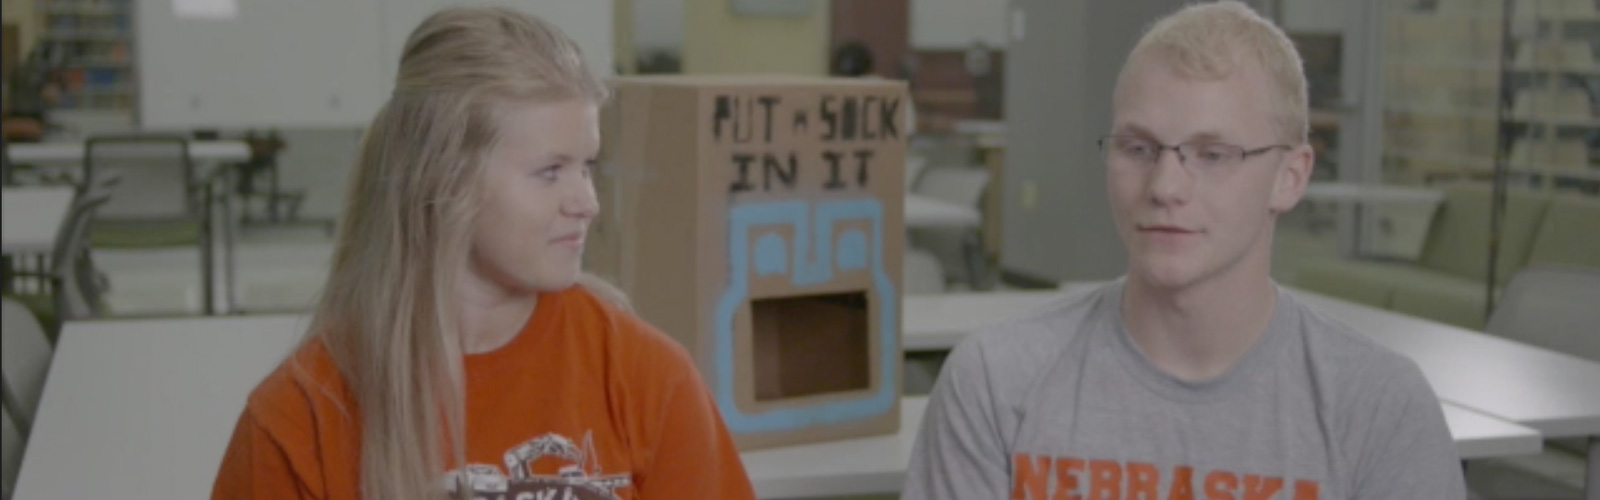 Engineering students Sarah Porath and Taylor Sundermann discuss the charity they created, Put a Sock In It.